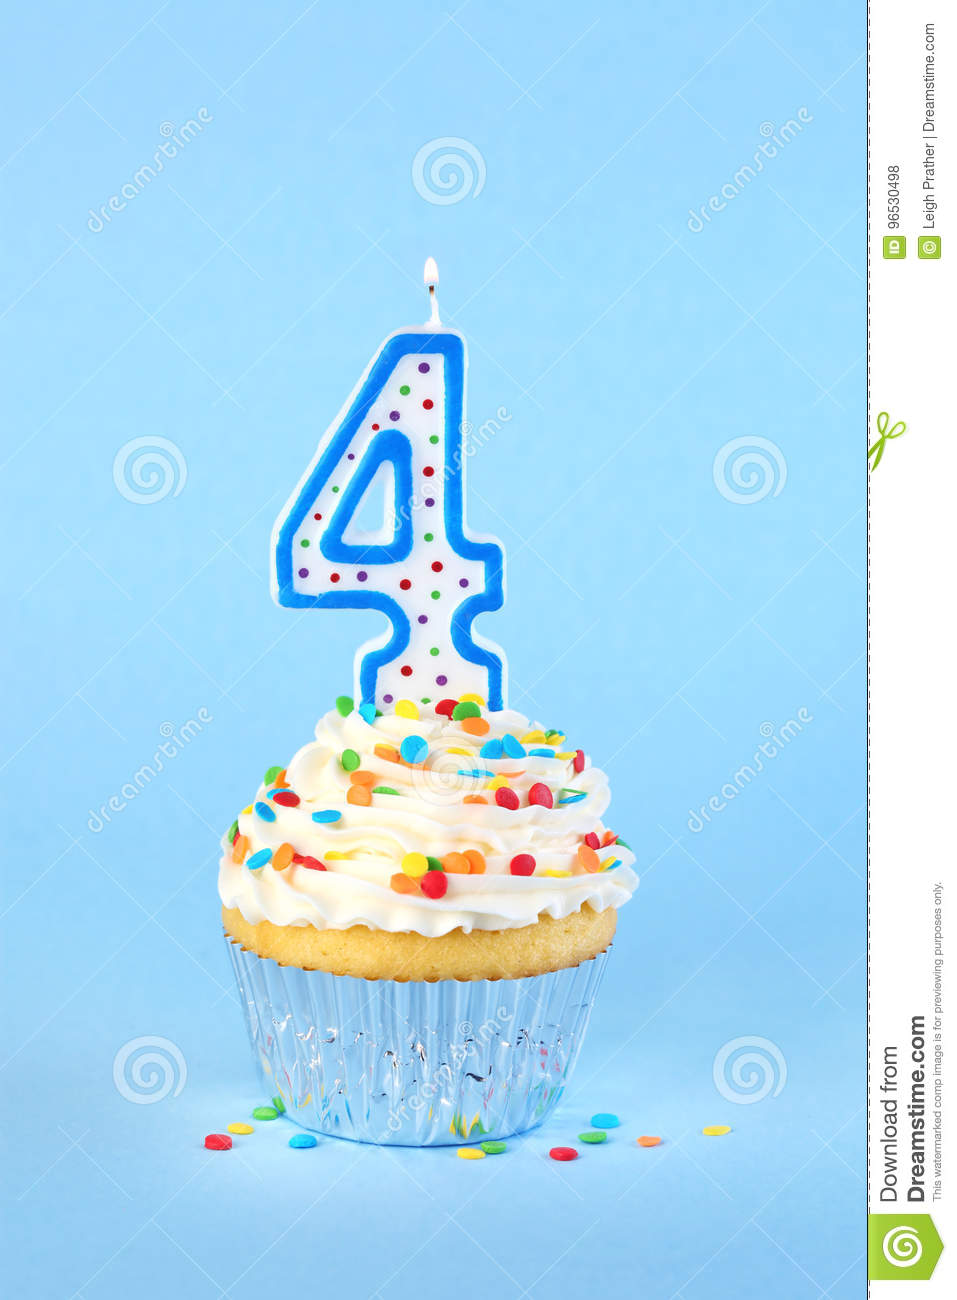 Iced Birthday Cupcake With Lit Number 4 Candle